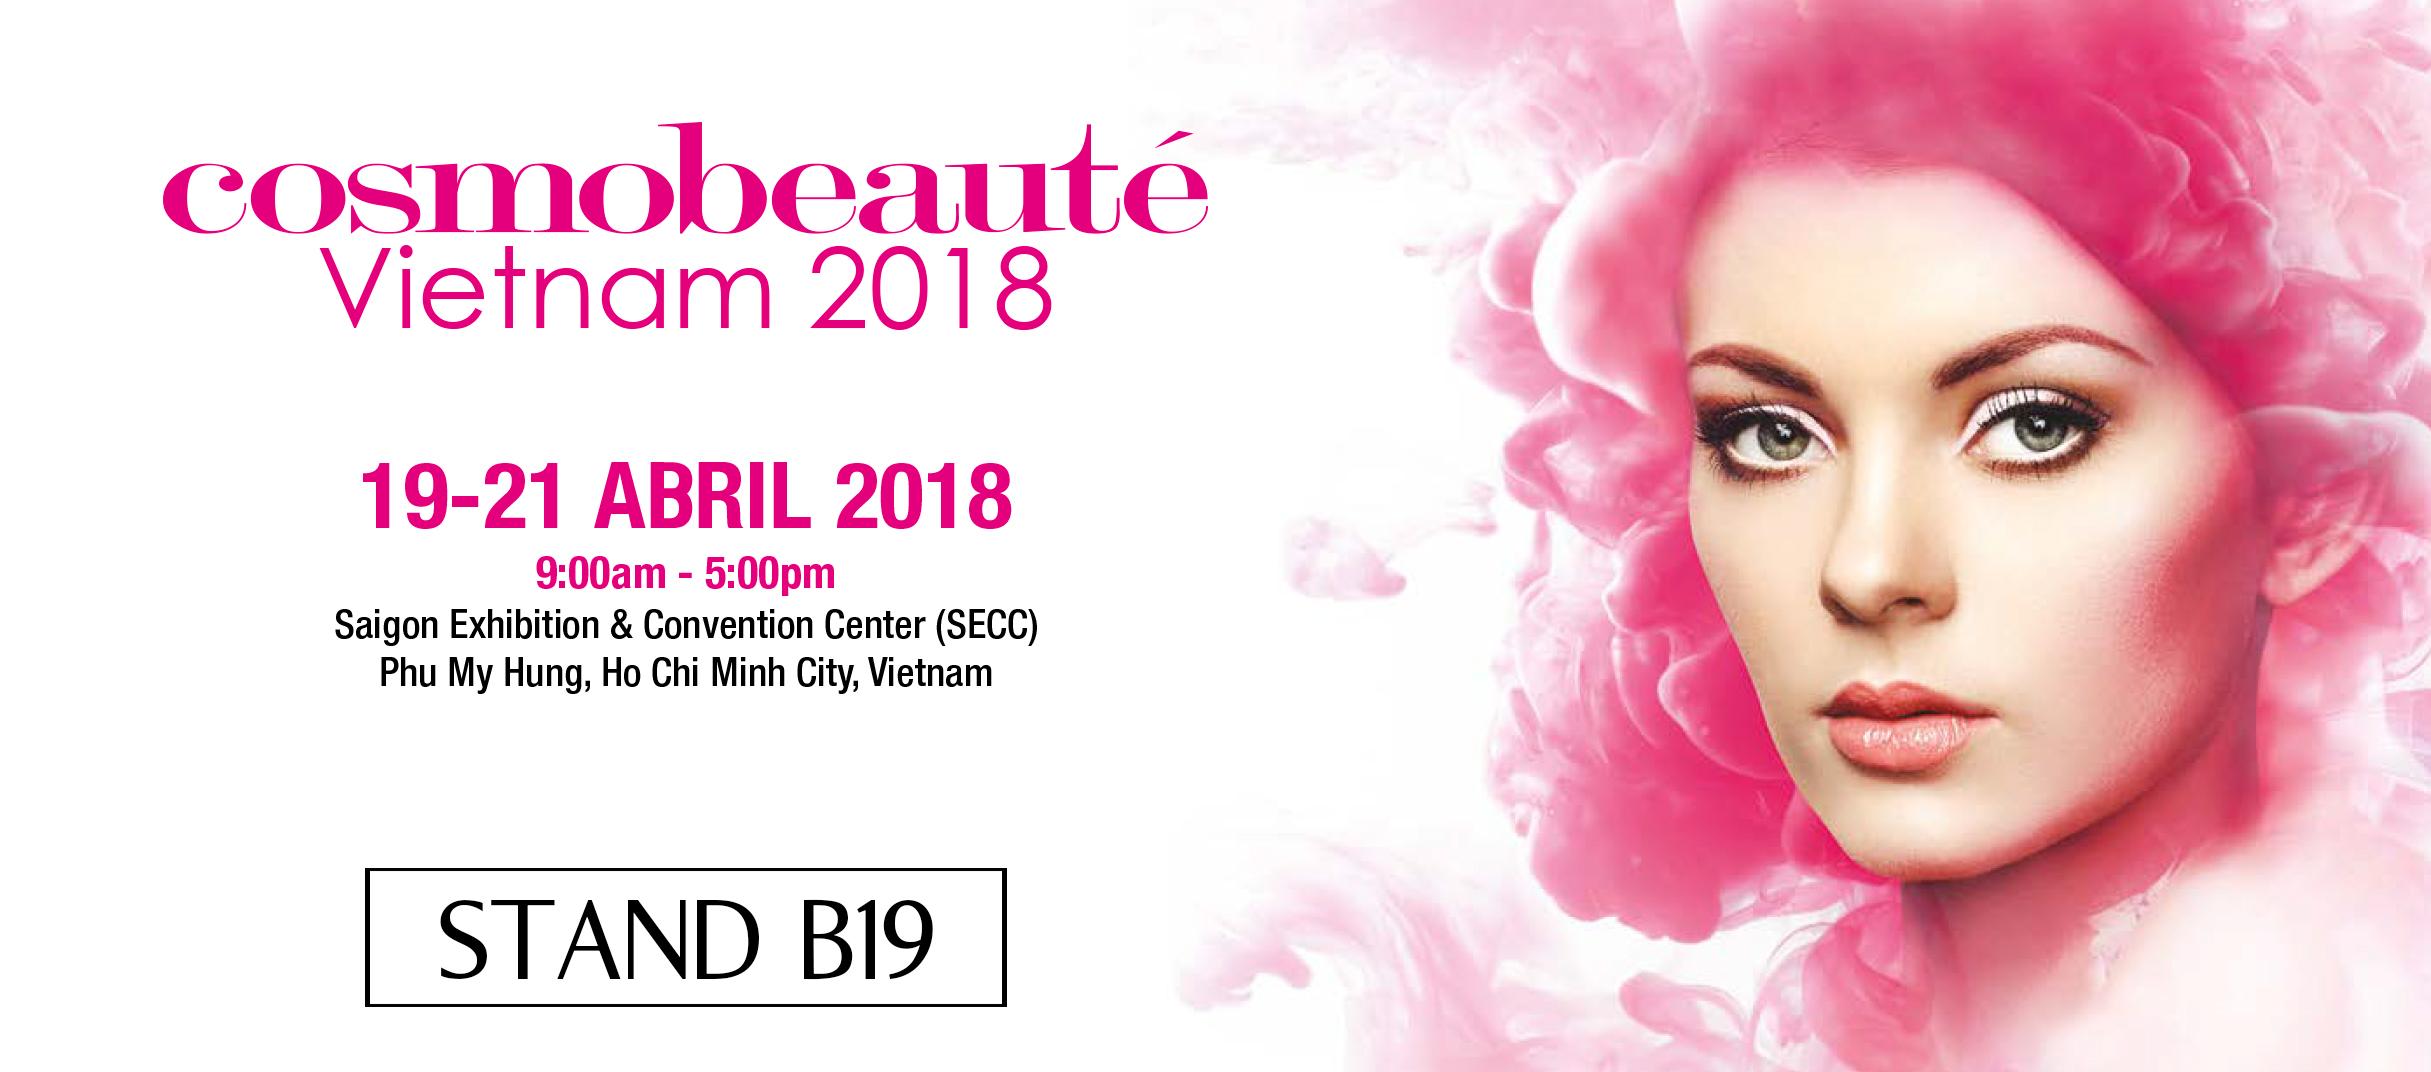 Cosmobeauté Ximart laboratories in Vietnam 2018